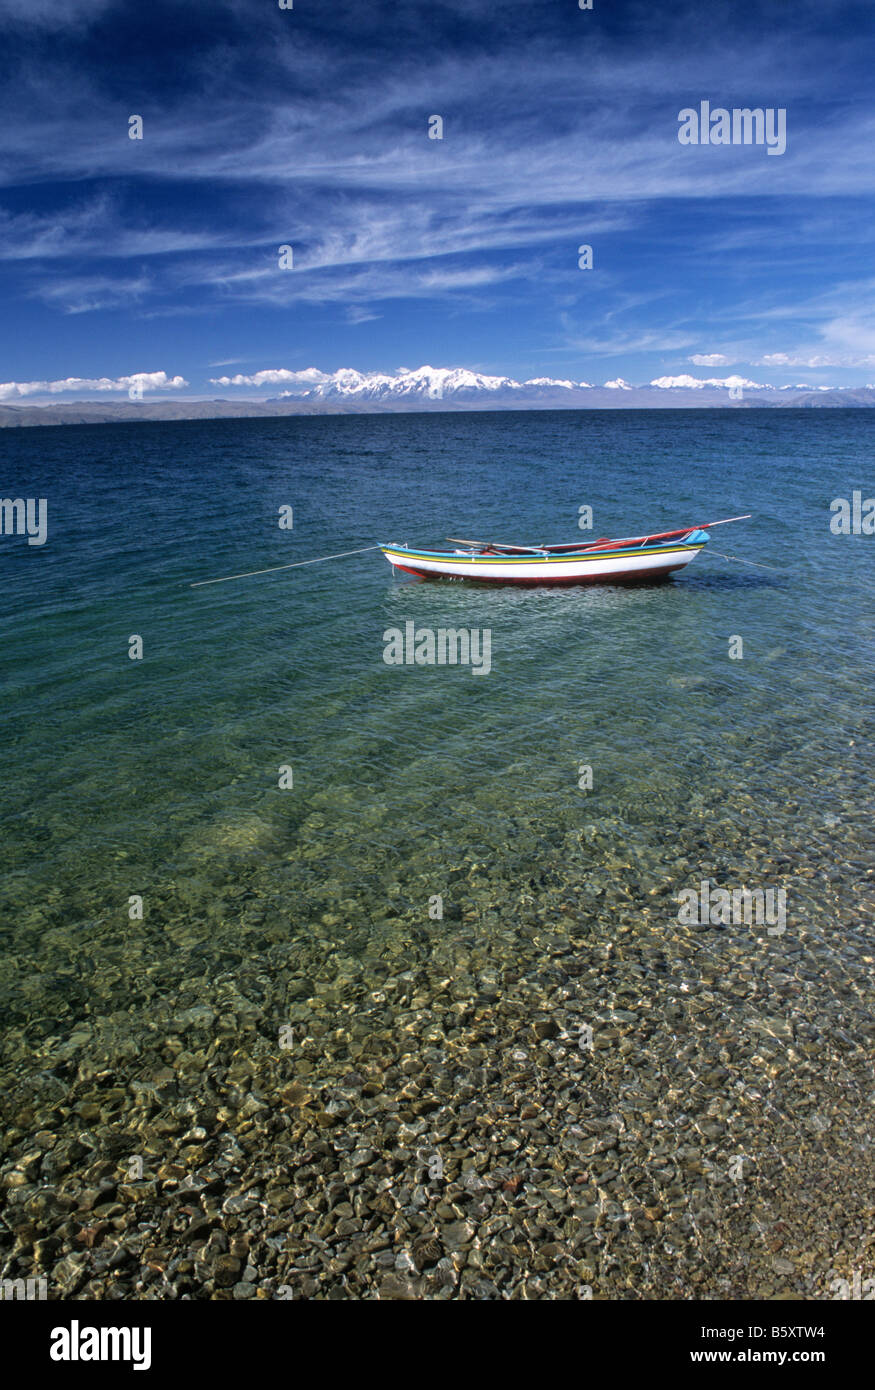 Fishing boat and clear water on pebbles, Cordillera Real in background, Moon Island, Lake Titicaca, Bolivia - Stock Image